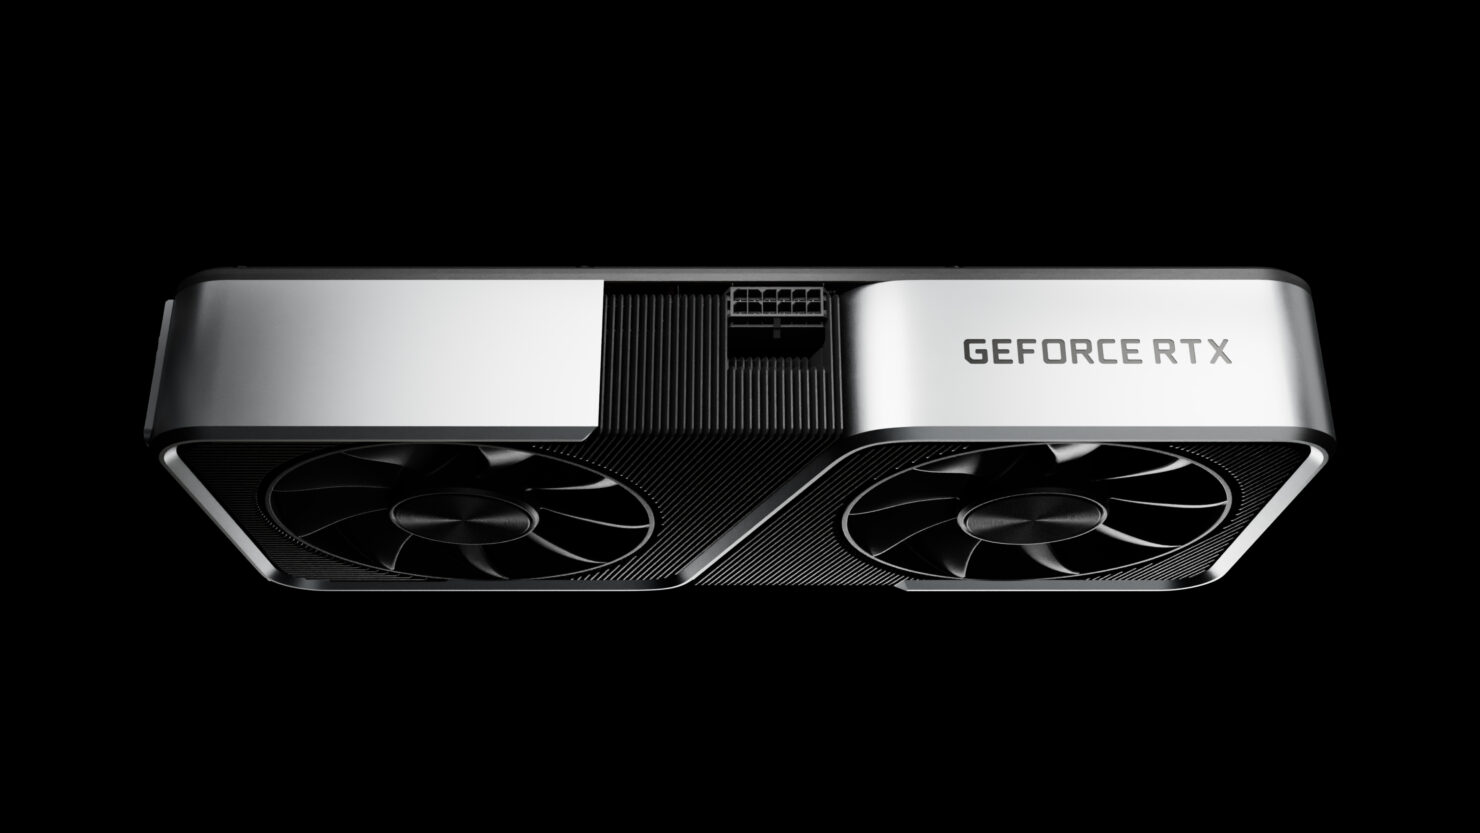 nvidia-geforce-rtx-3060-graphics-cards-with-ampere-ga104-gpus-spotted